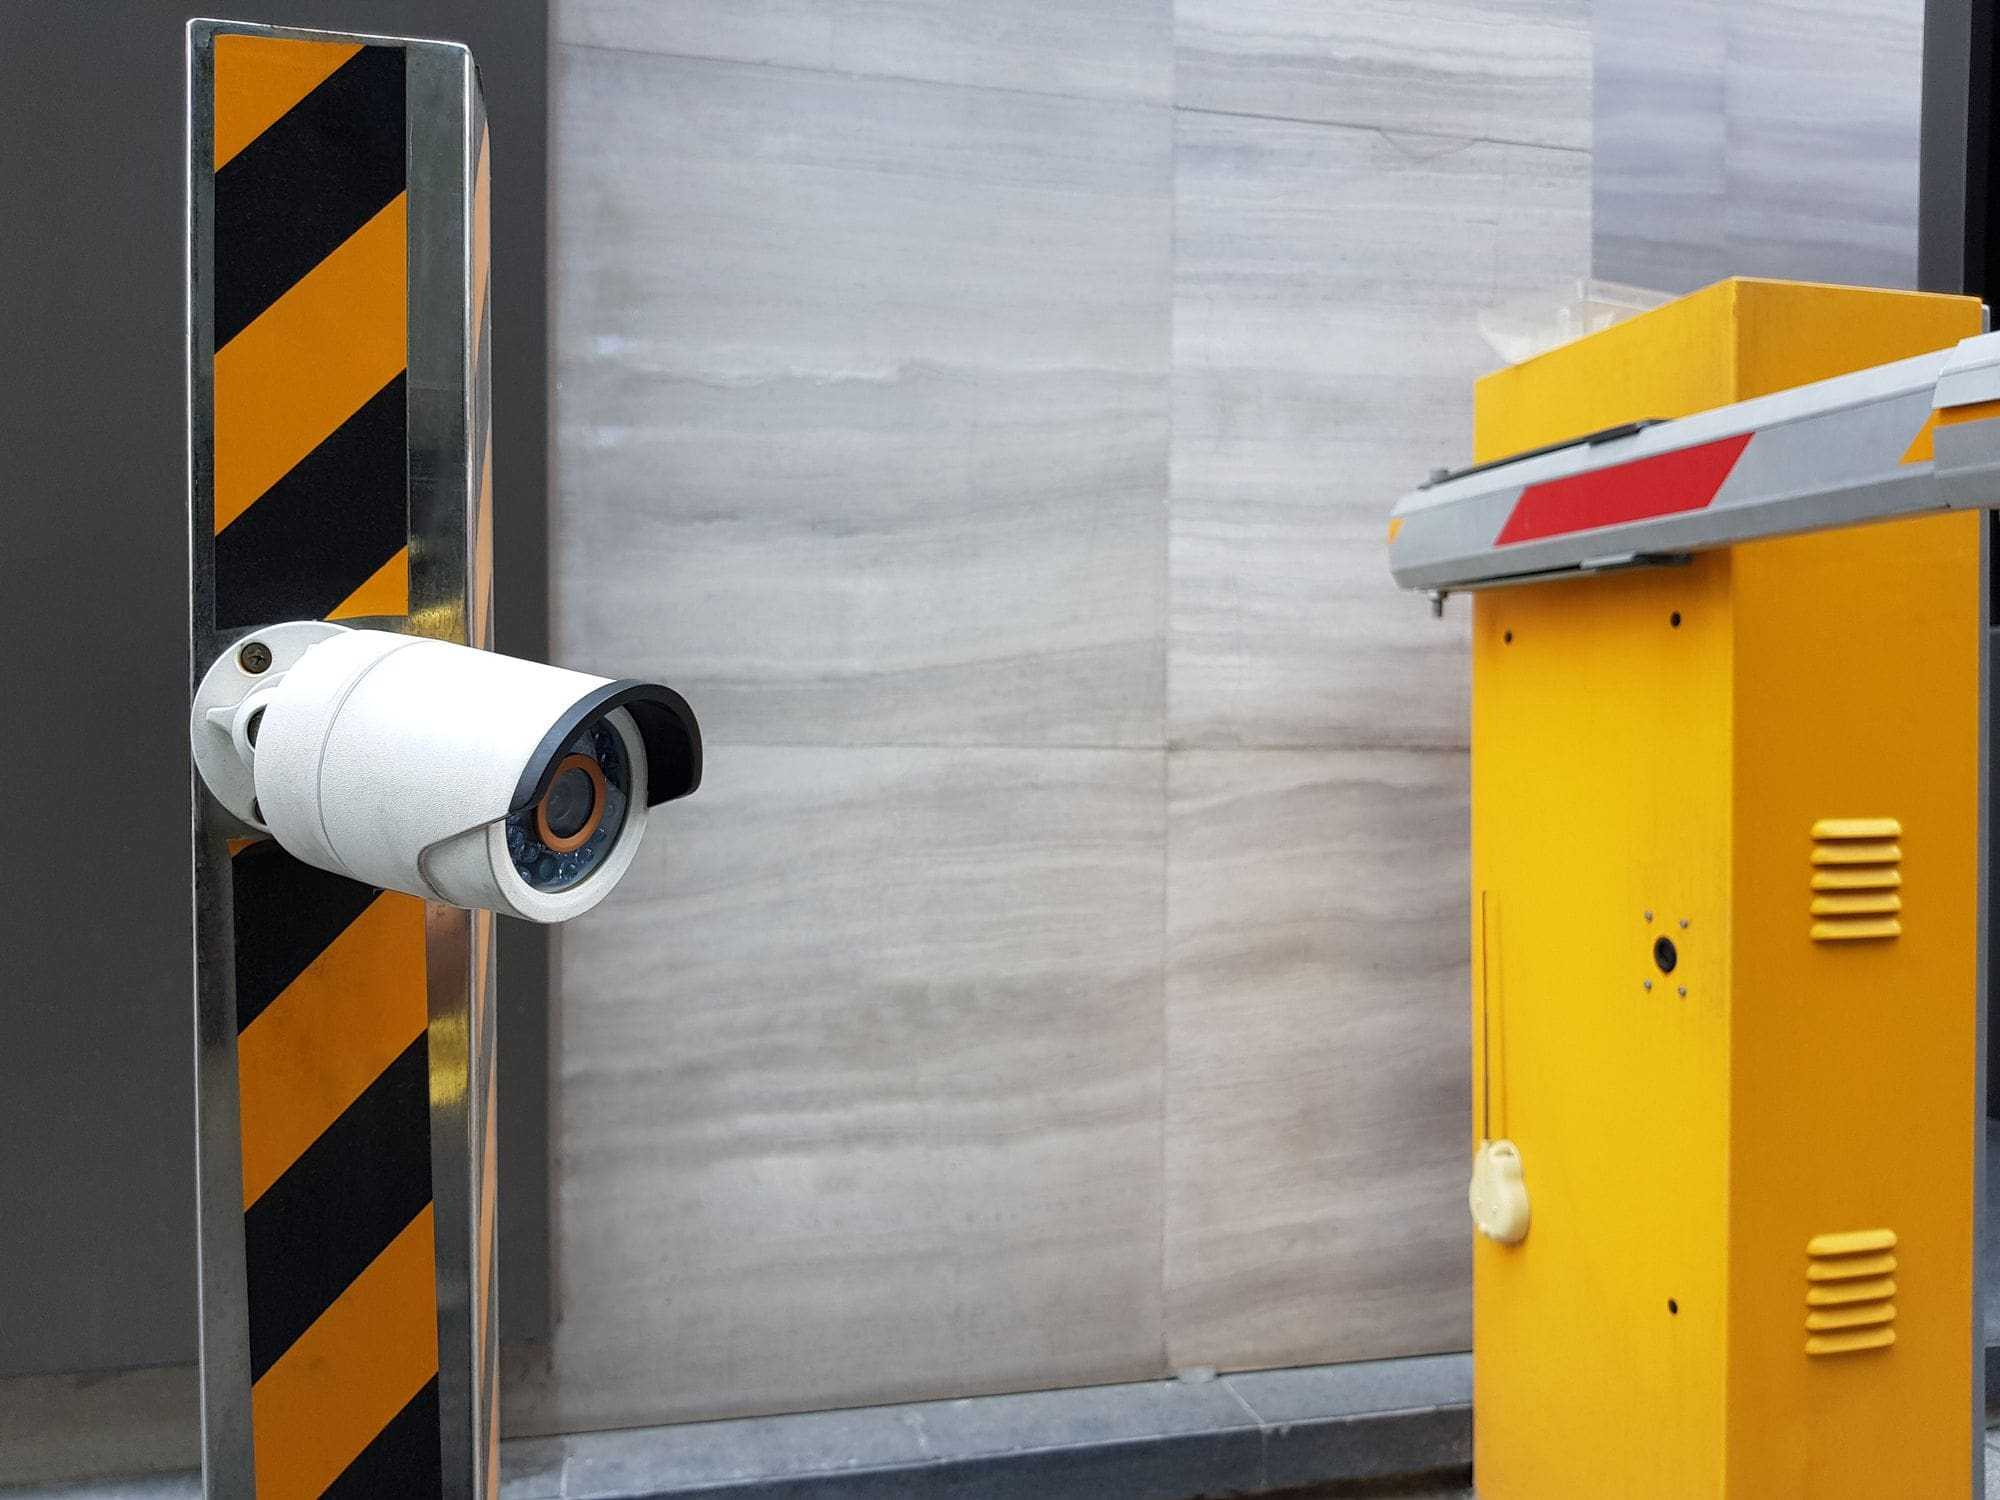 CCTV security camera at commercial automatic gate entrance